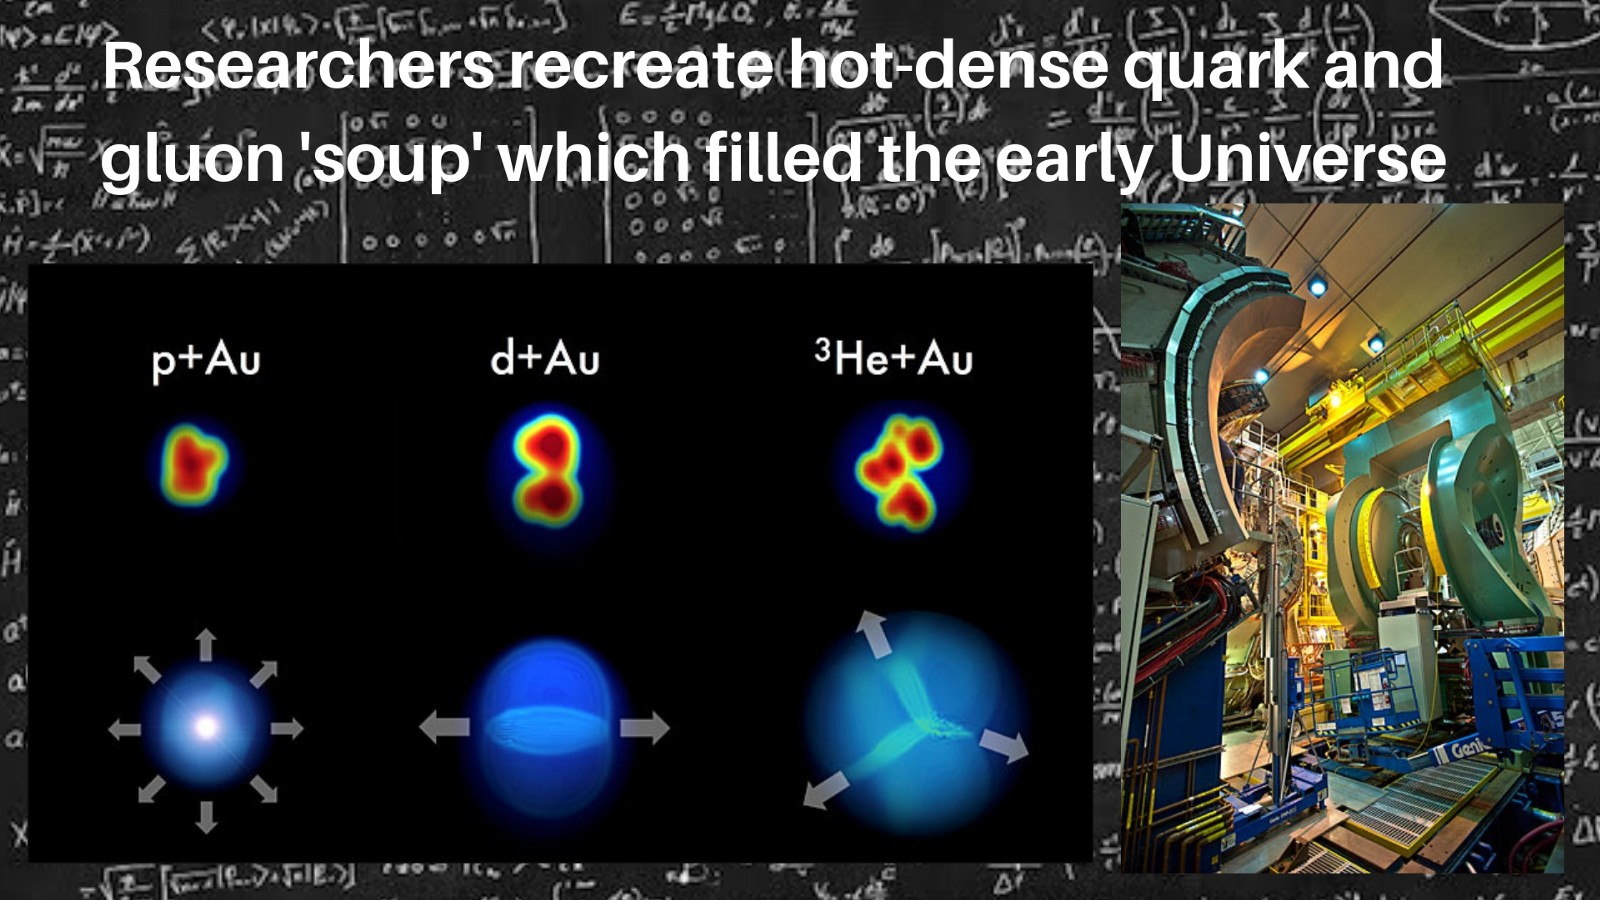 Researchers recreate hot-dense quark and gluon 'soup' which filled the early Universe